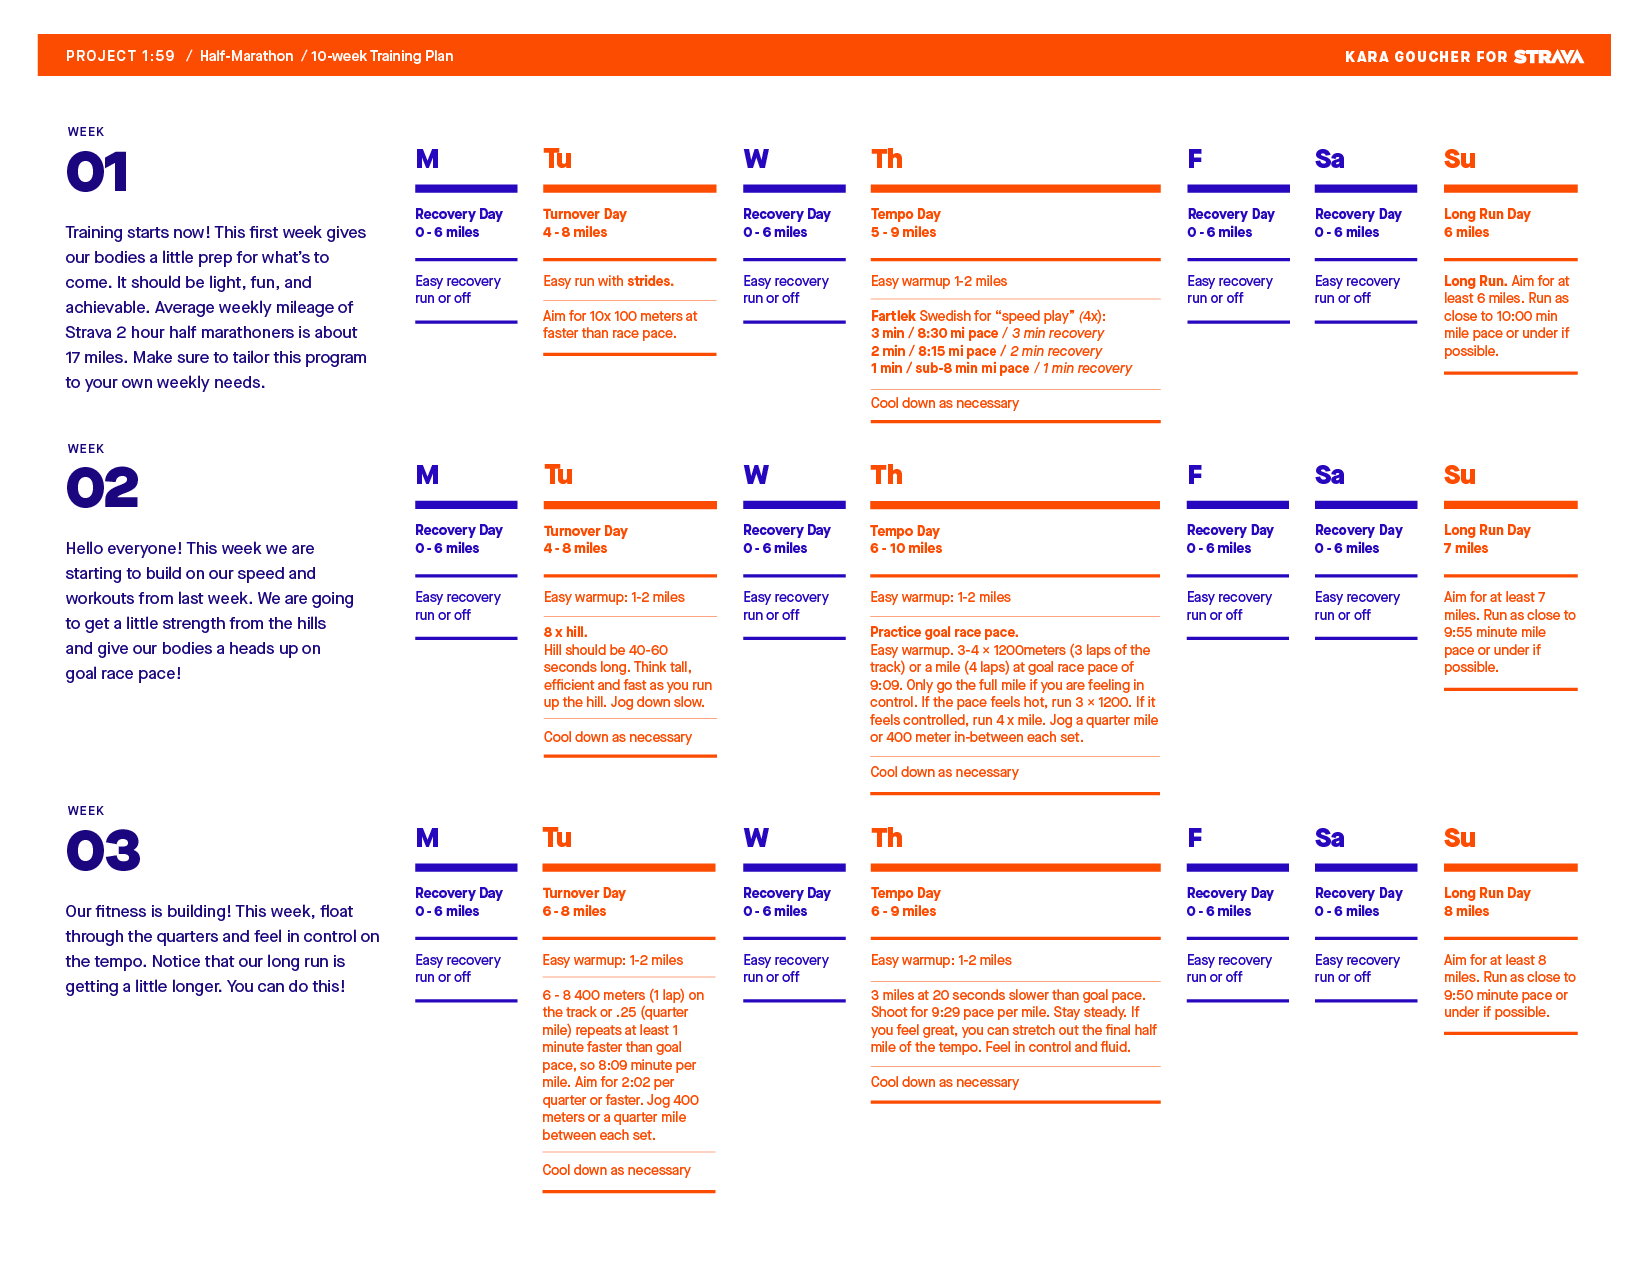 159TrainingPlan_TP-plan-1 copy.png